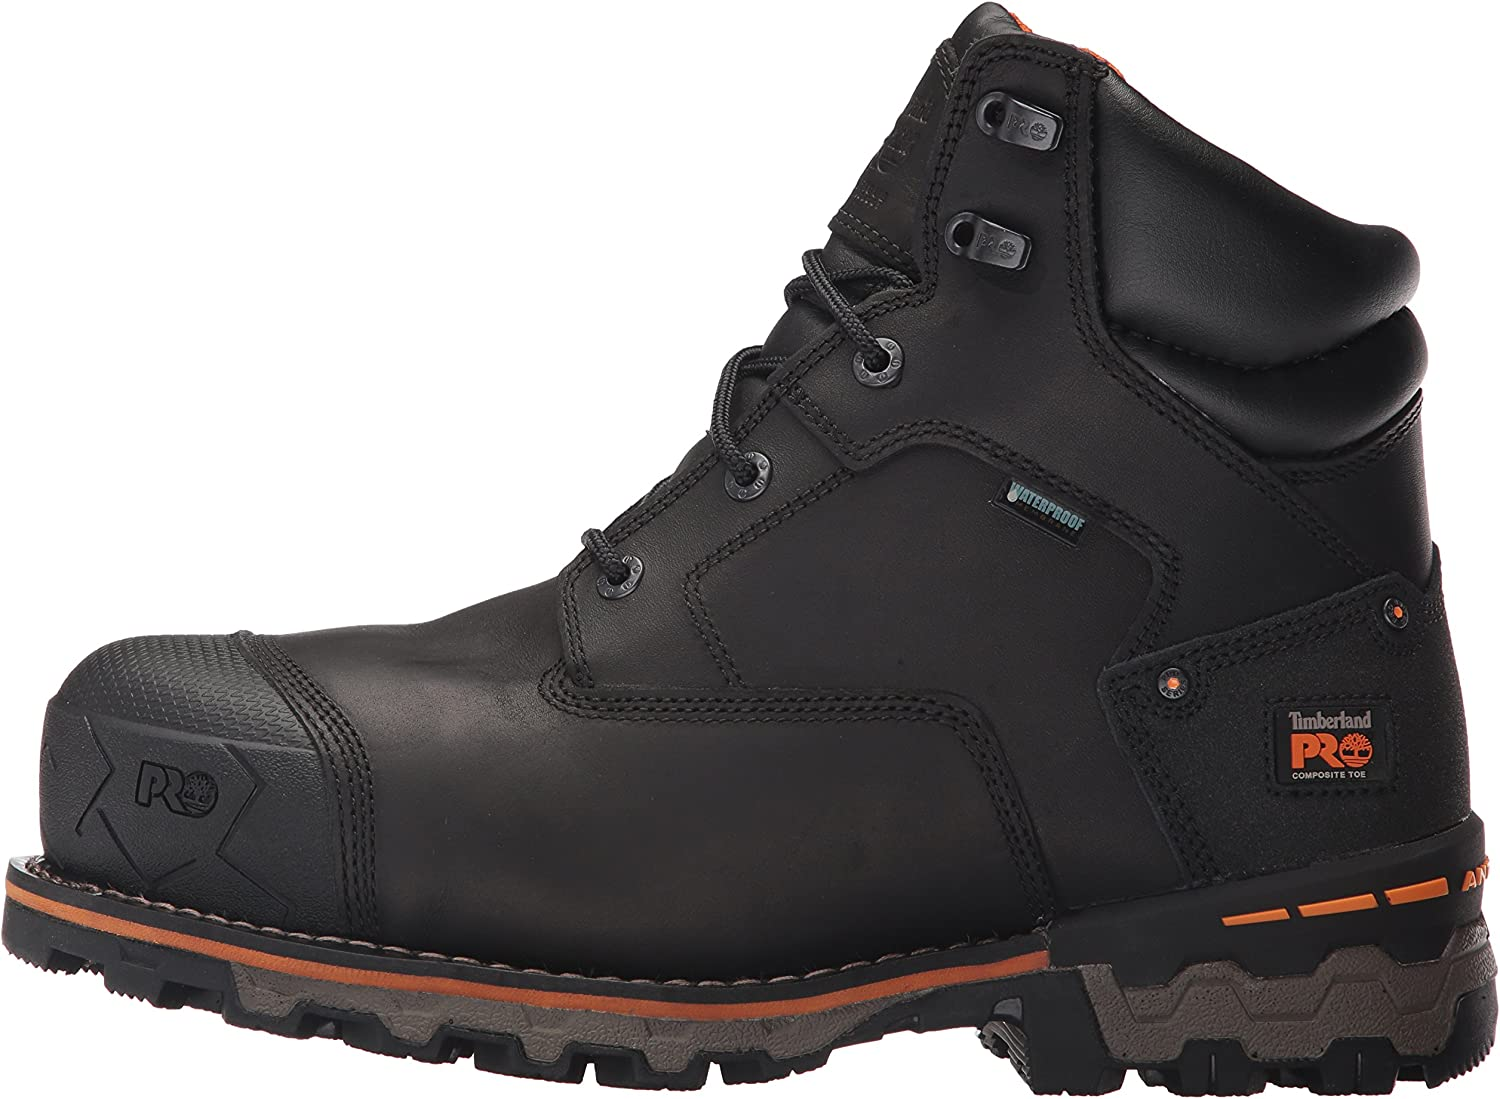 Timberland PRO Chaussure 6 in Boondock CT WP pour Homme, 43.5 2E EU, Black